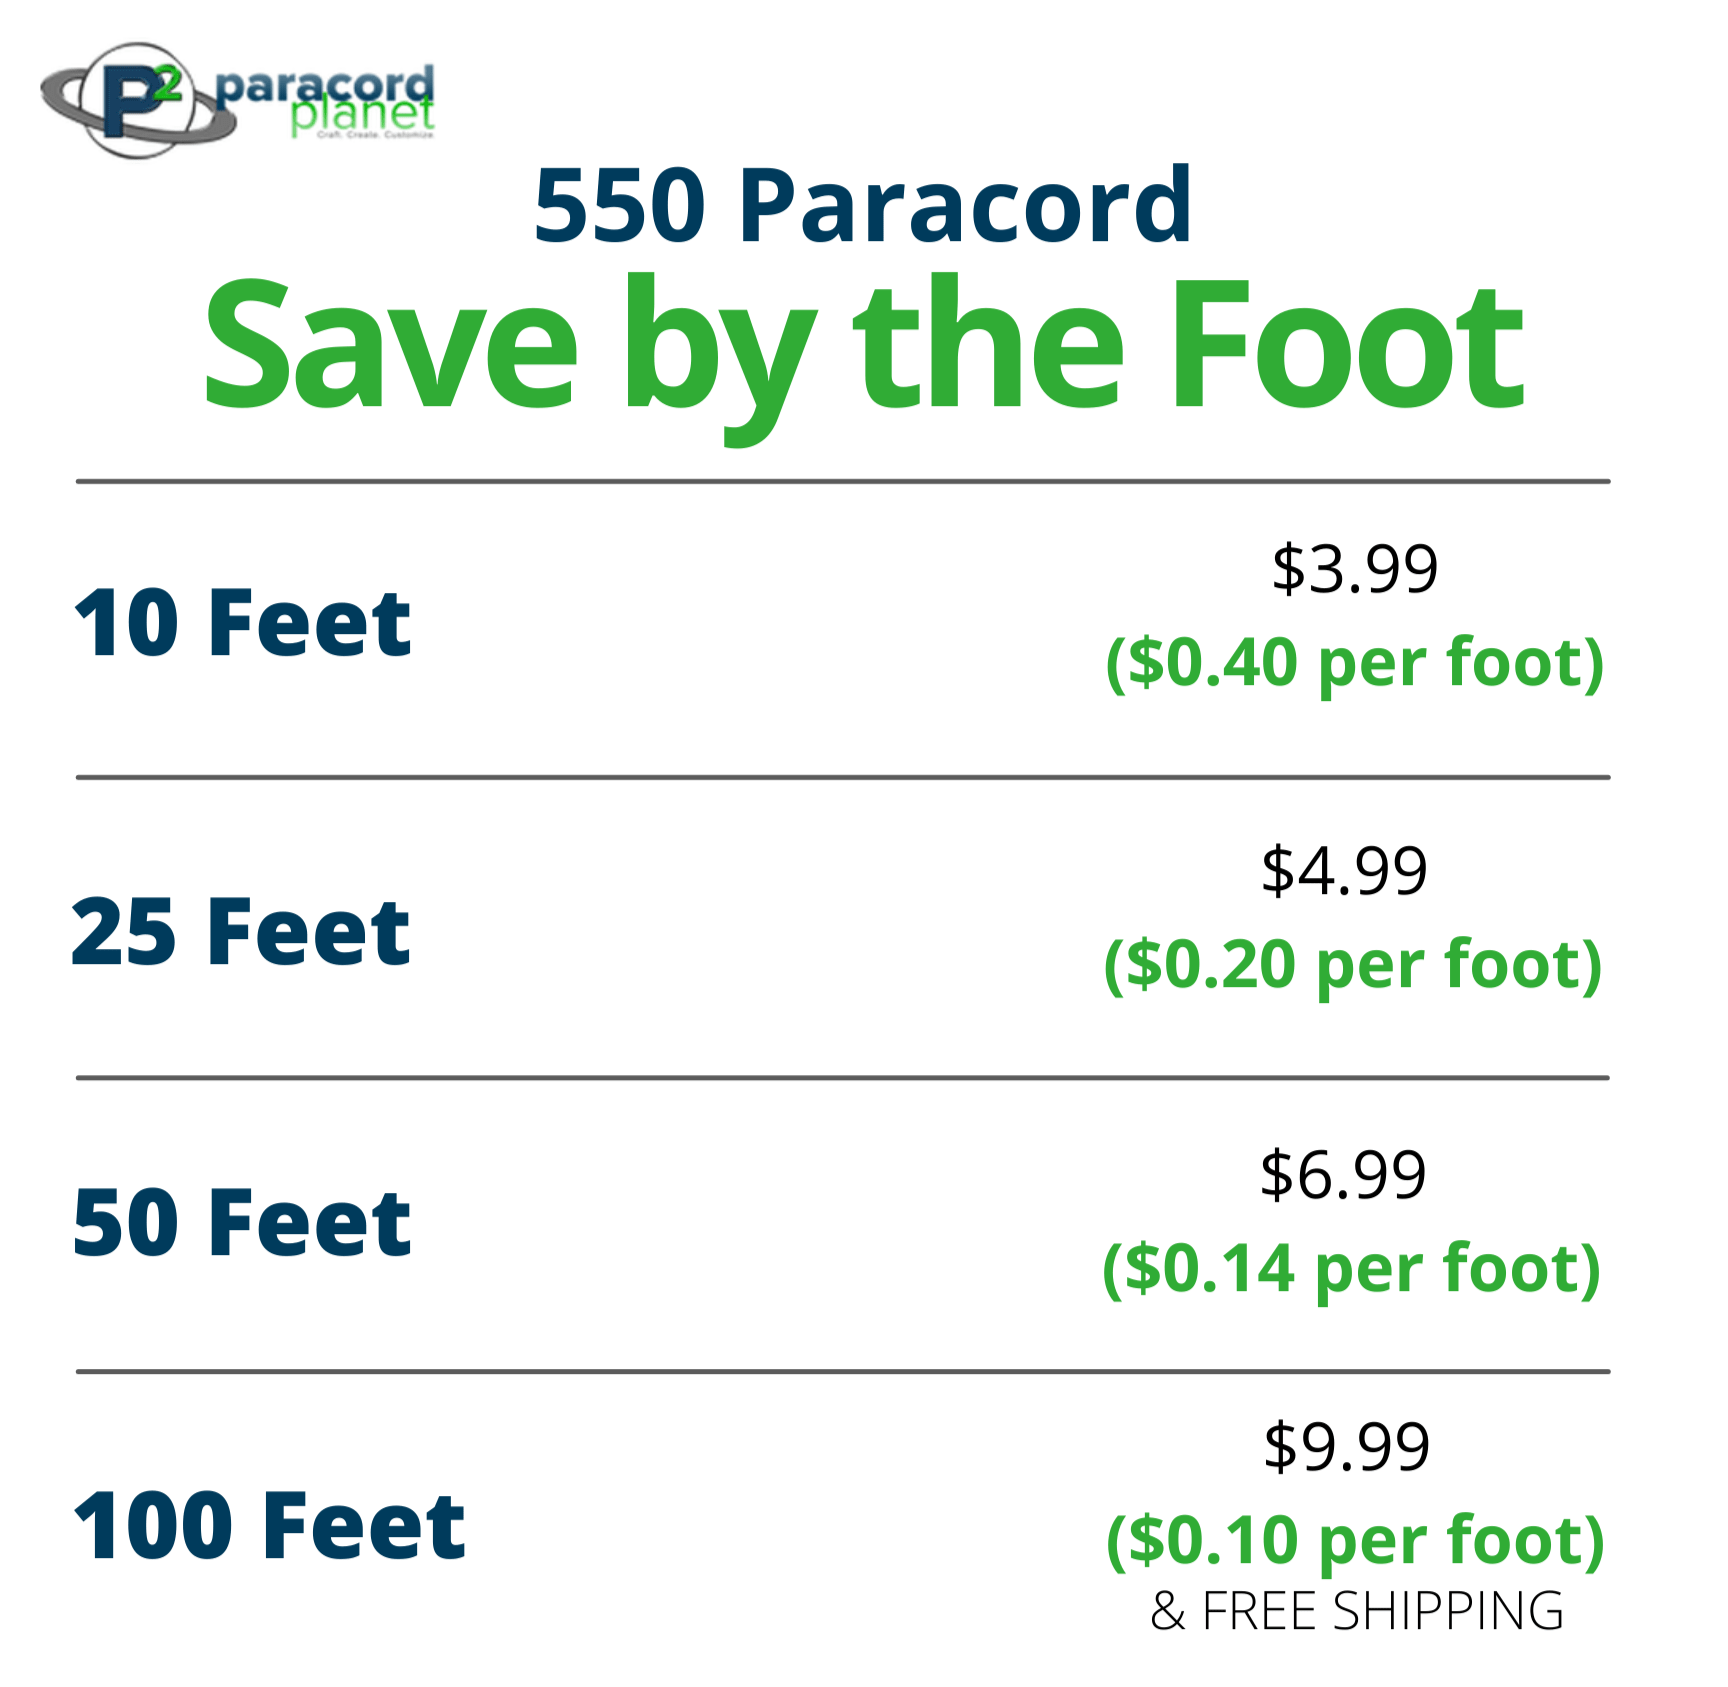 Paracord 550 hanks - White - Save by the foot today